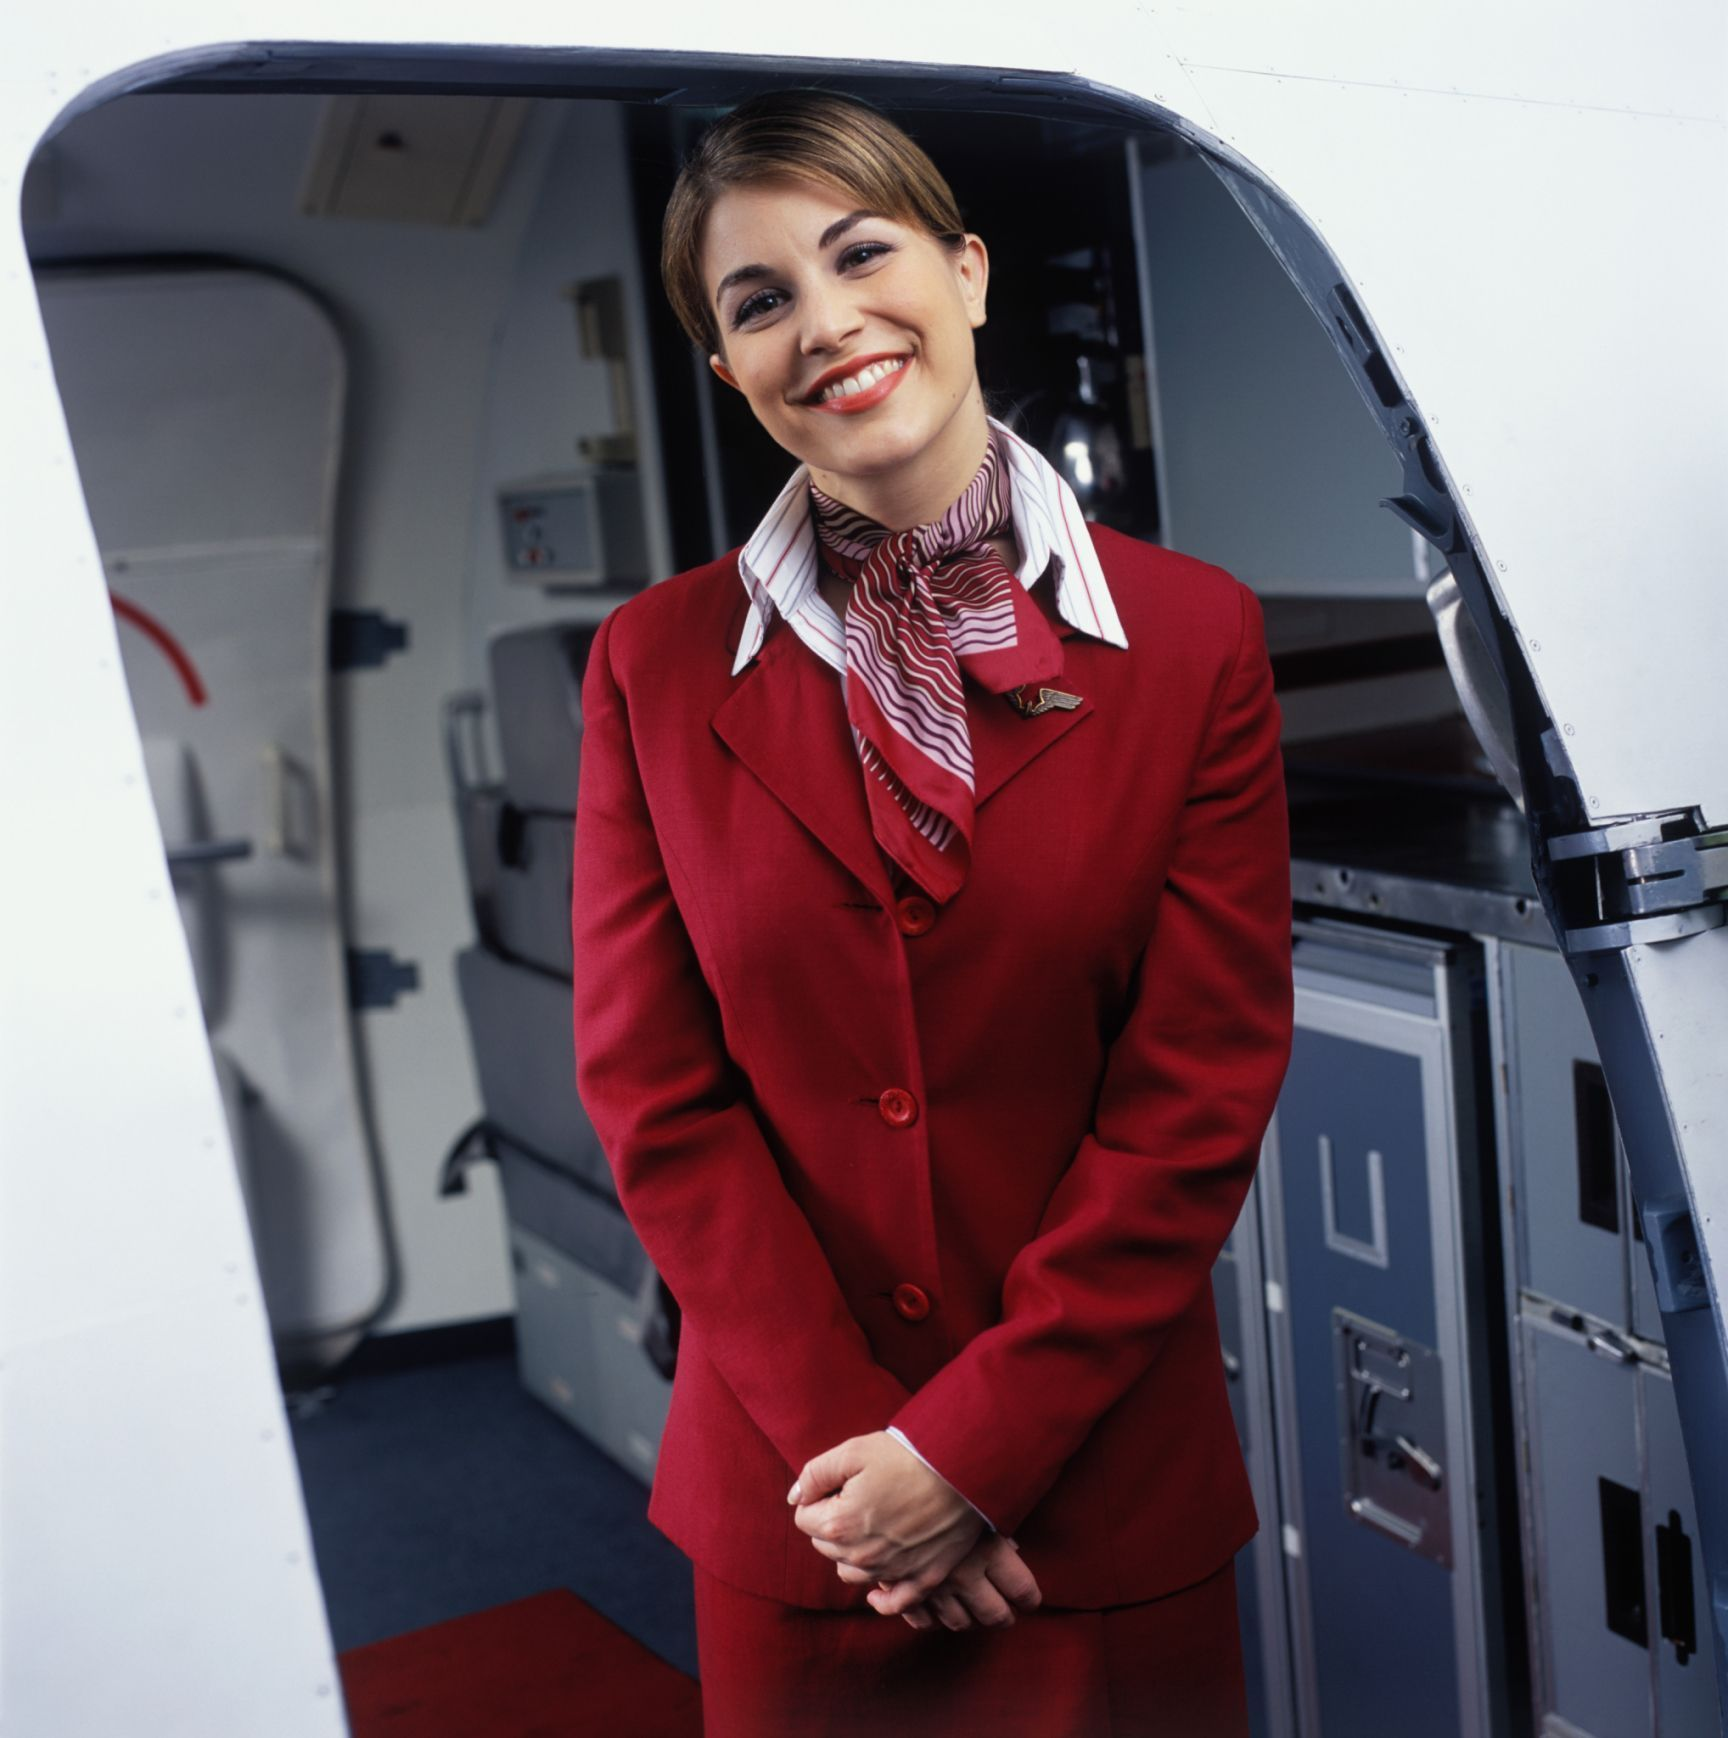 here is a flight attendant cover letter example and skills list